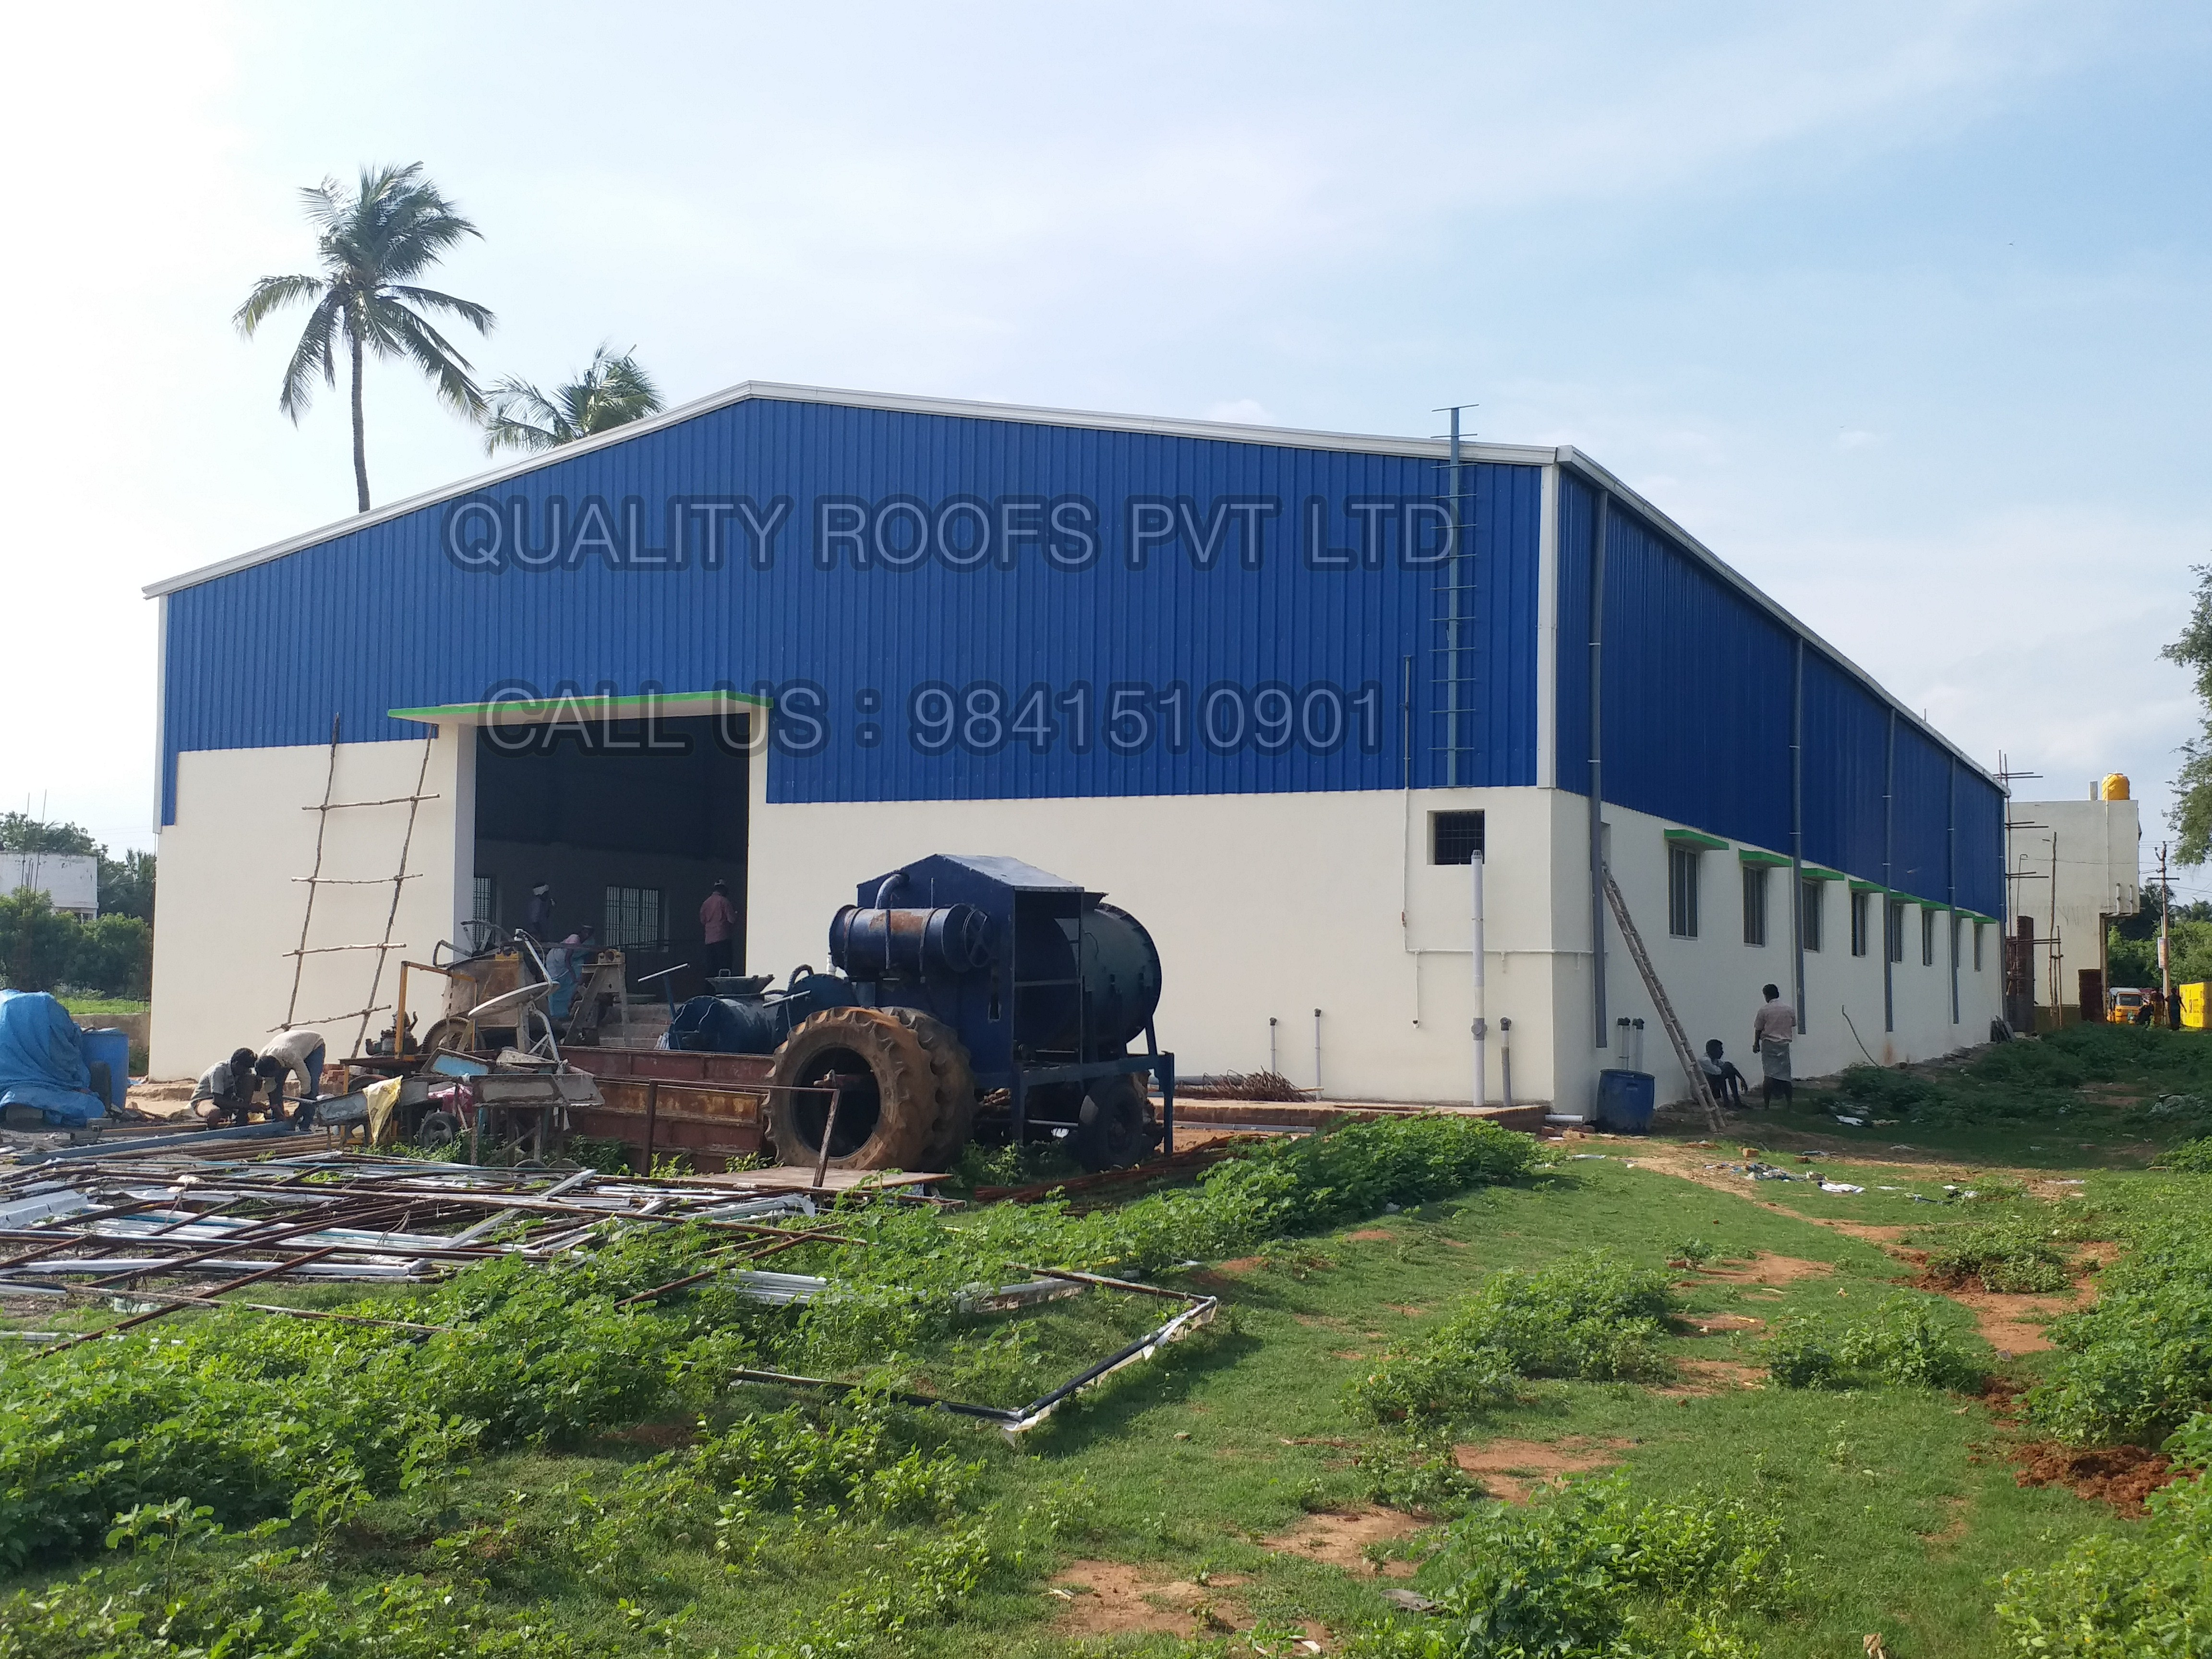 Metal Roofing Contractors In Chennai | Quality Roofs Pvt Ltd | Metal Roofing Contractors In Chennai,Industrial Roofing Contractors In Chennai,Best Roofing Contractors In Chennai,Best Roofing Fabricators In Chennai - GL57727